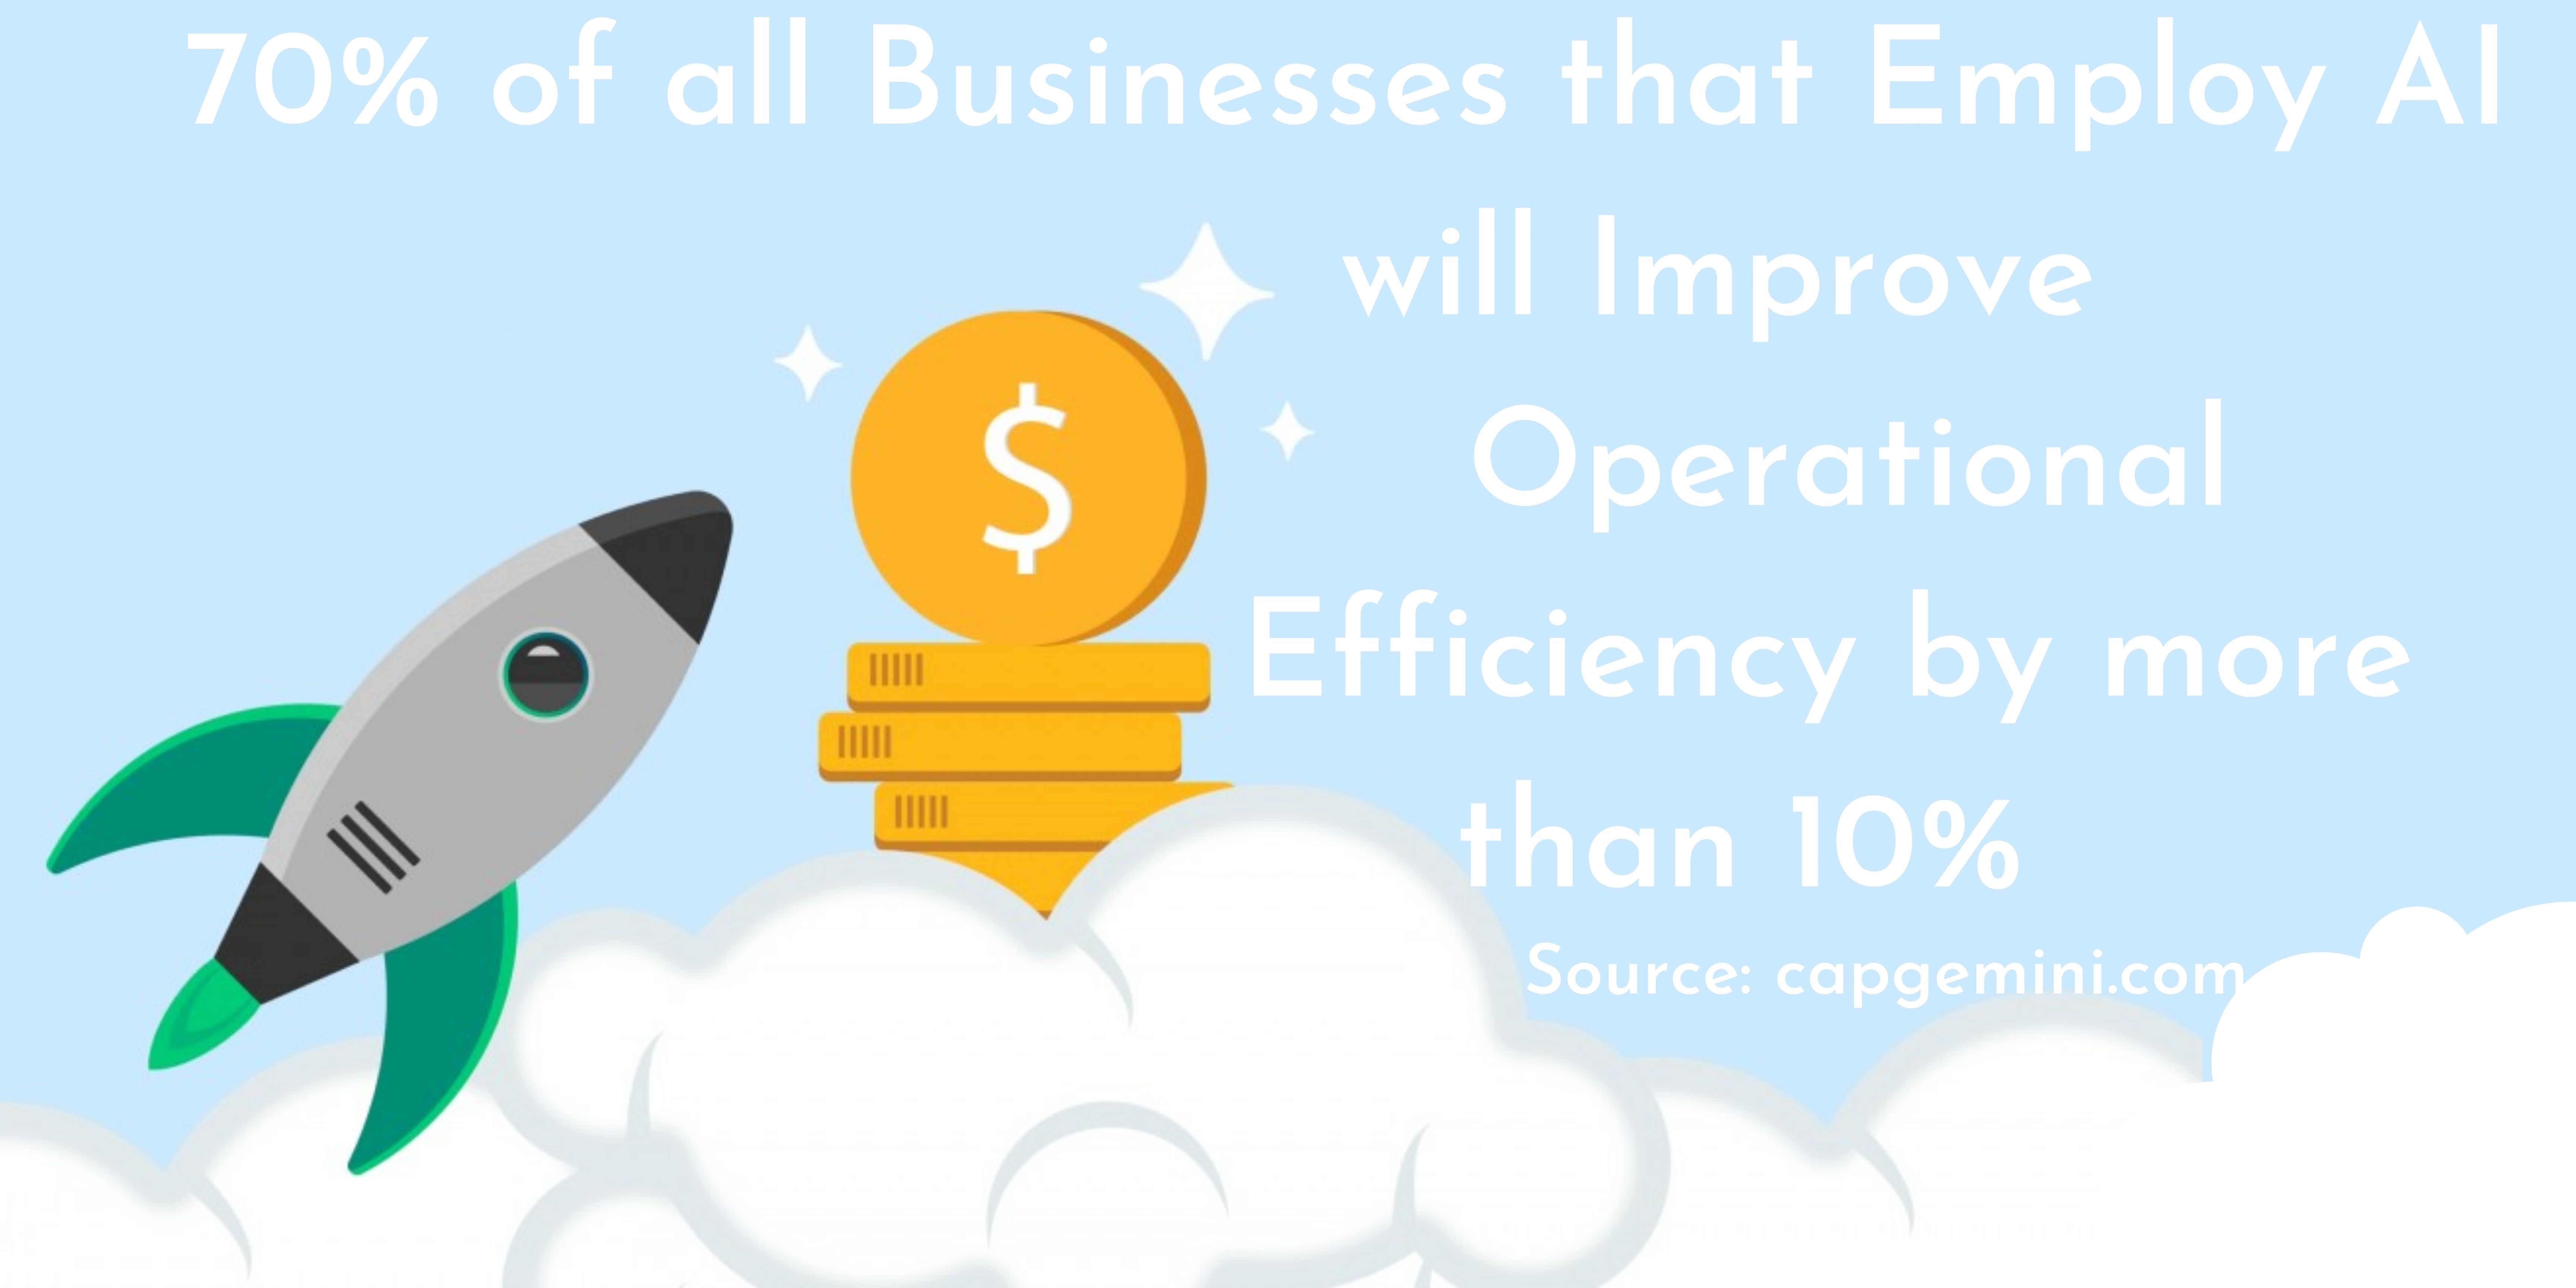 Image banner that states that 70% of all businesses that employ AI have improved operational efficiency by more than 10%, with a vector image of a rocket shooting to the clouds, indicating business growth